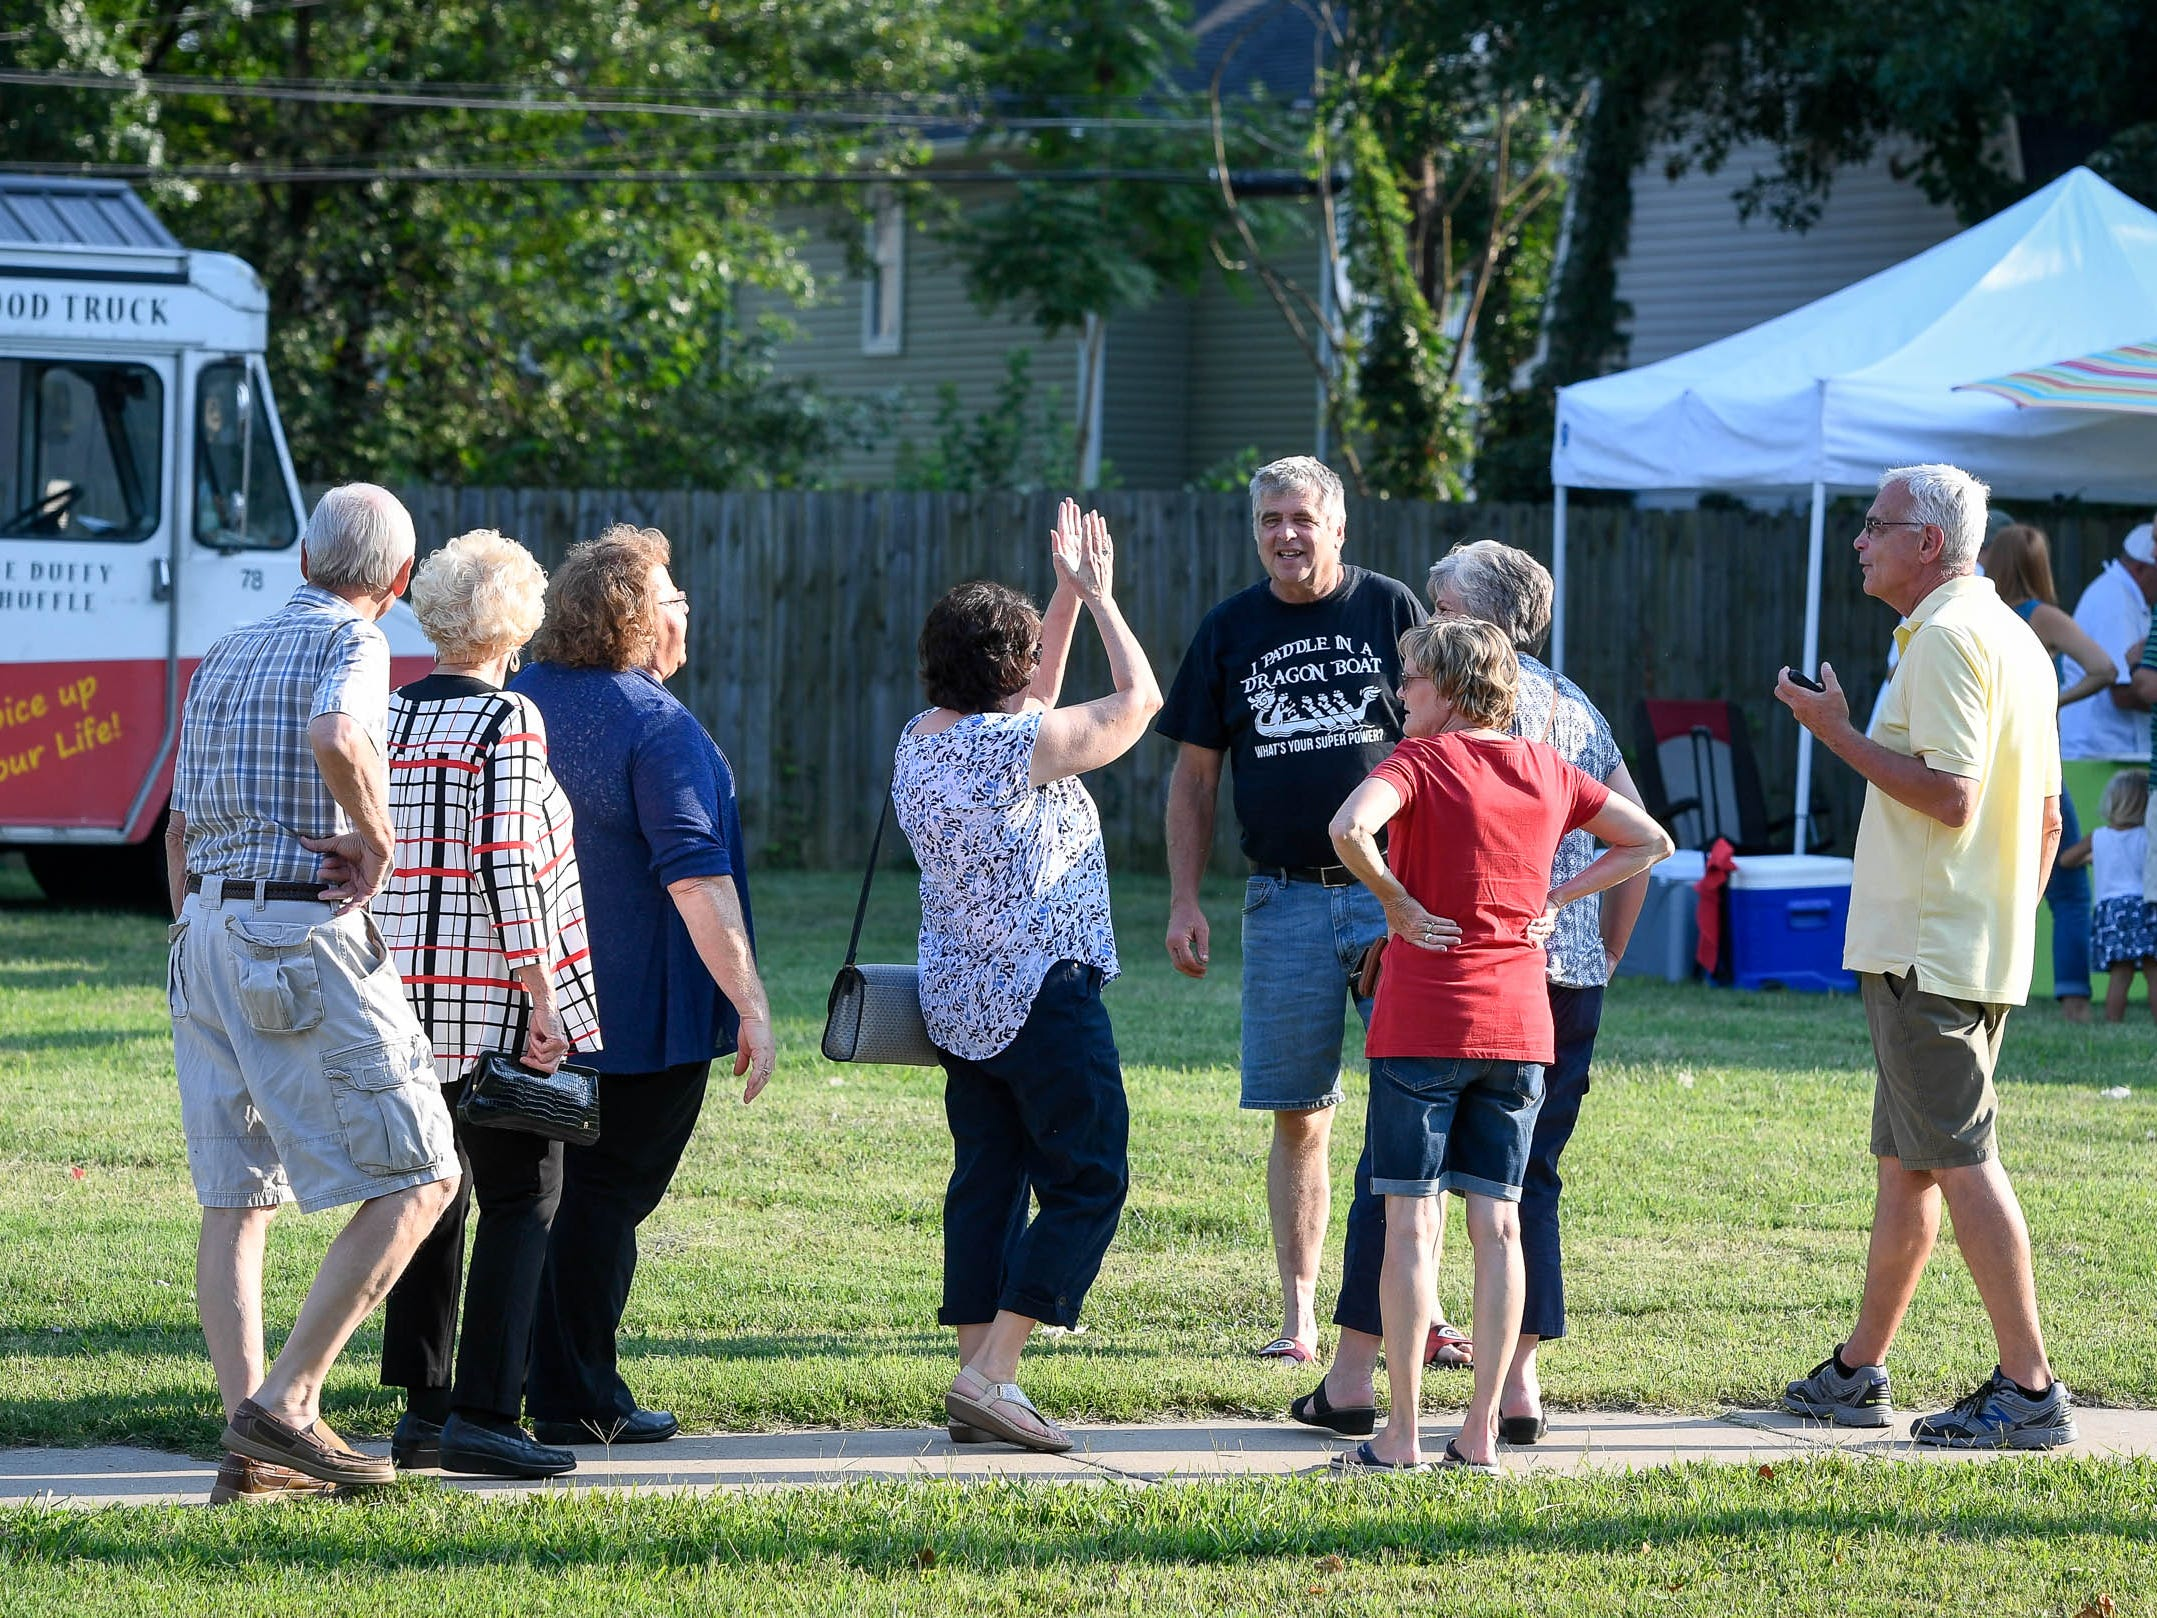 Hungry and excited people gather for the Haynie's Corner First Friday event in the downtown Arts District Friday, August 3, 2018.